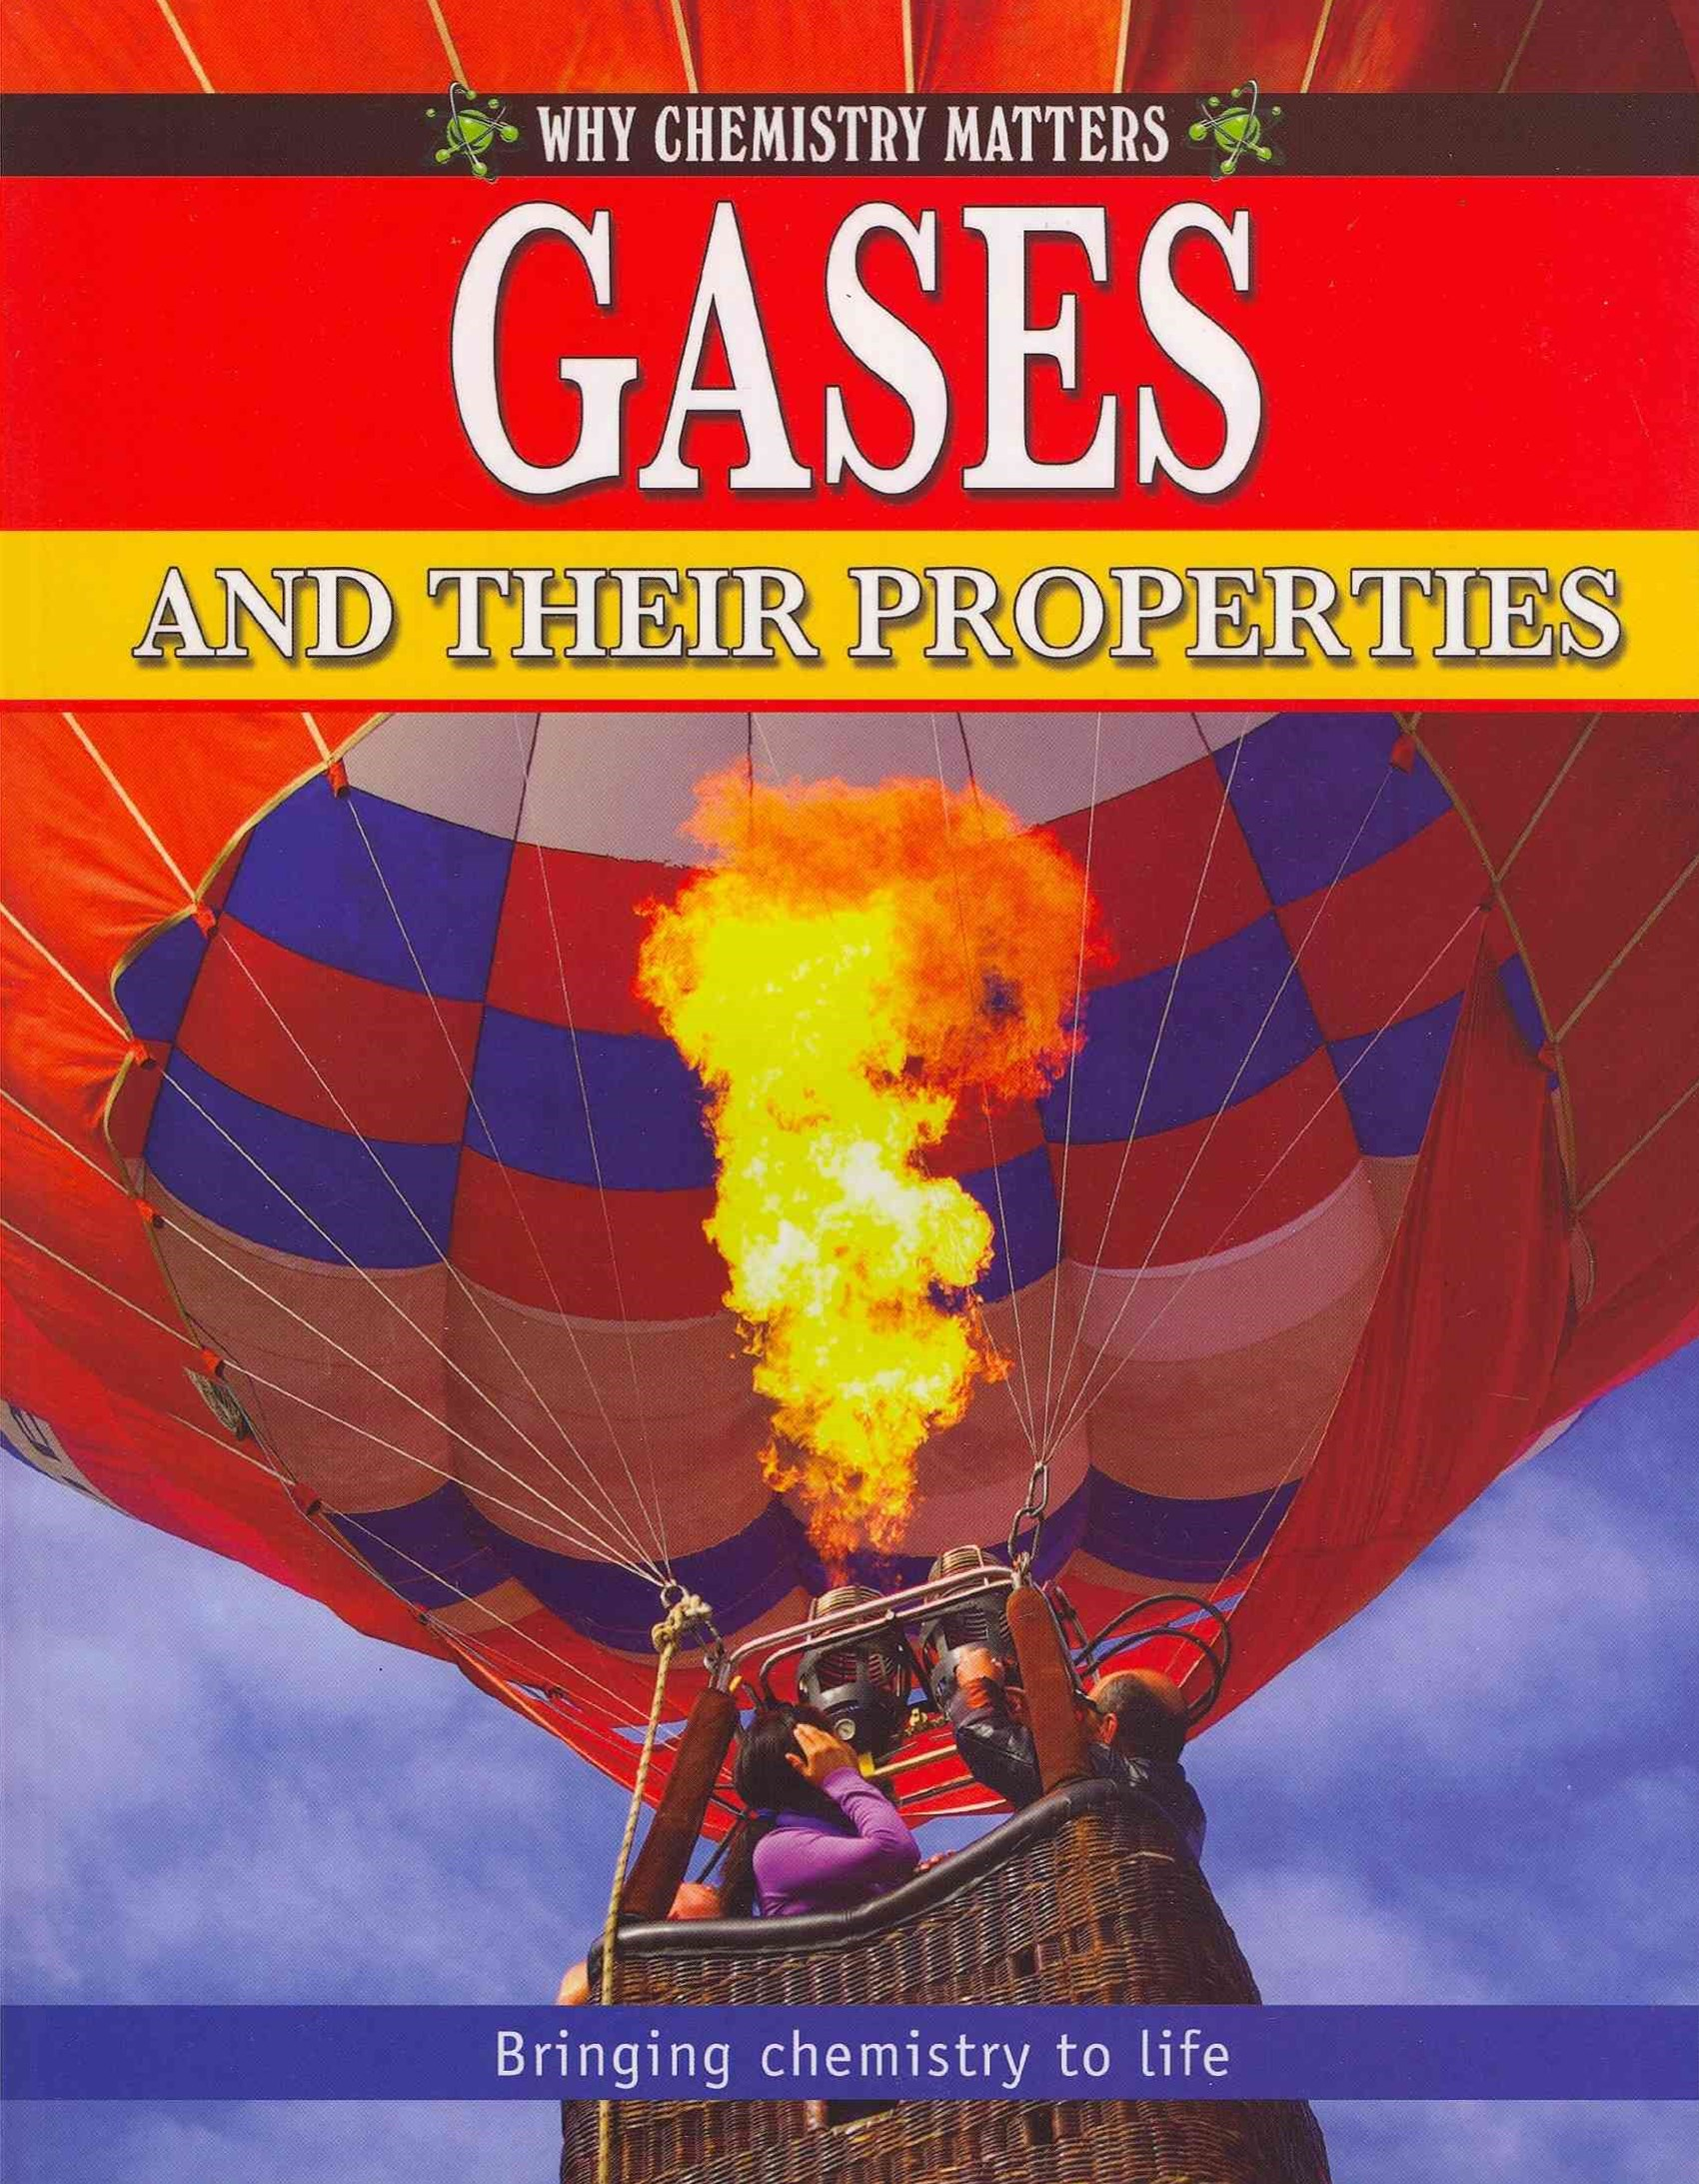 Gases and their Properties - Why Chemistry Matters